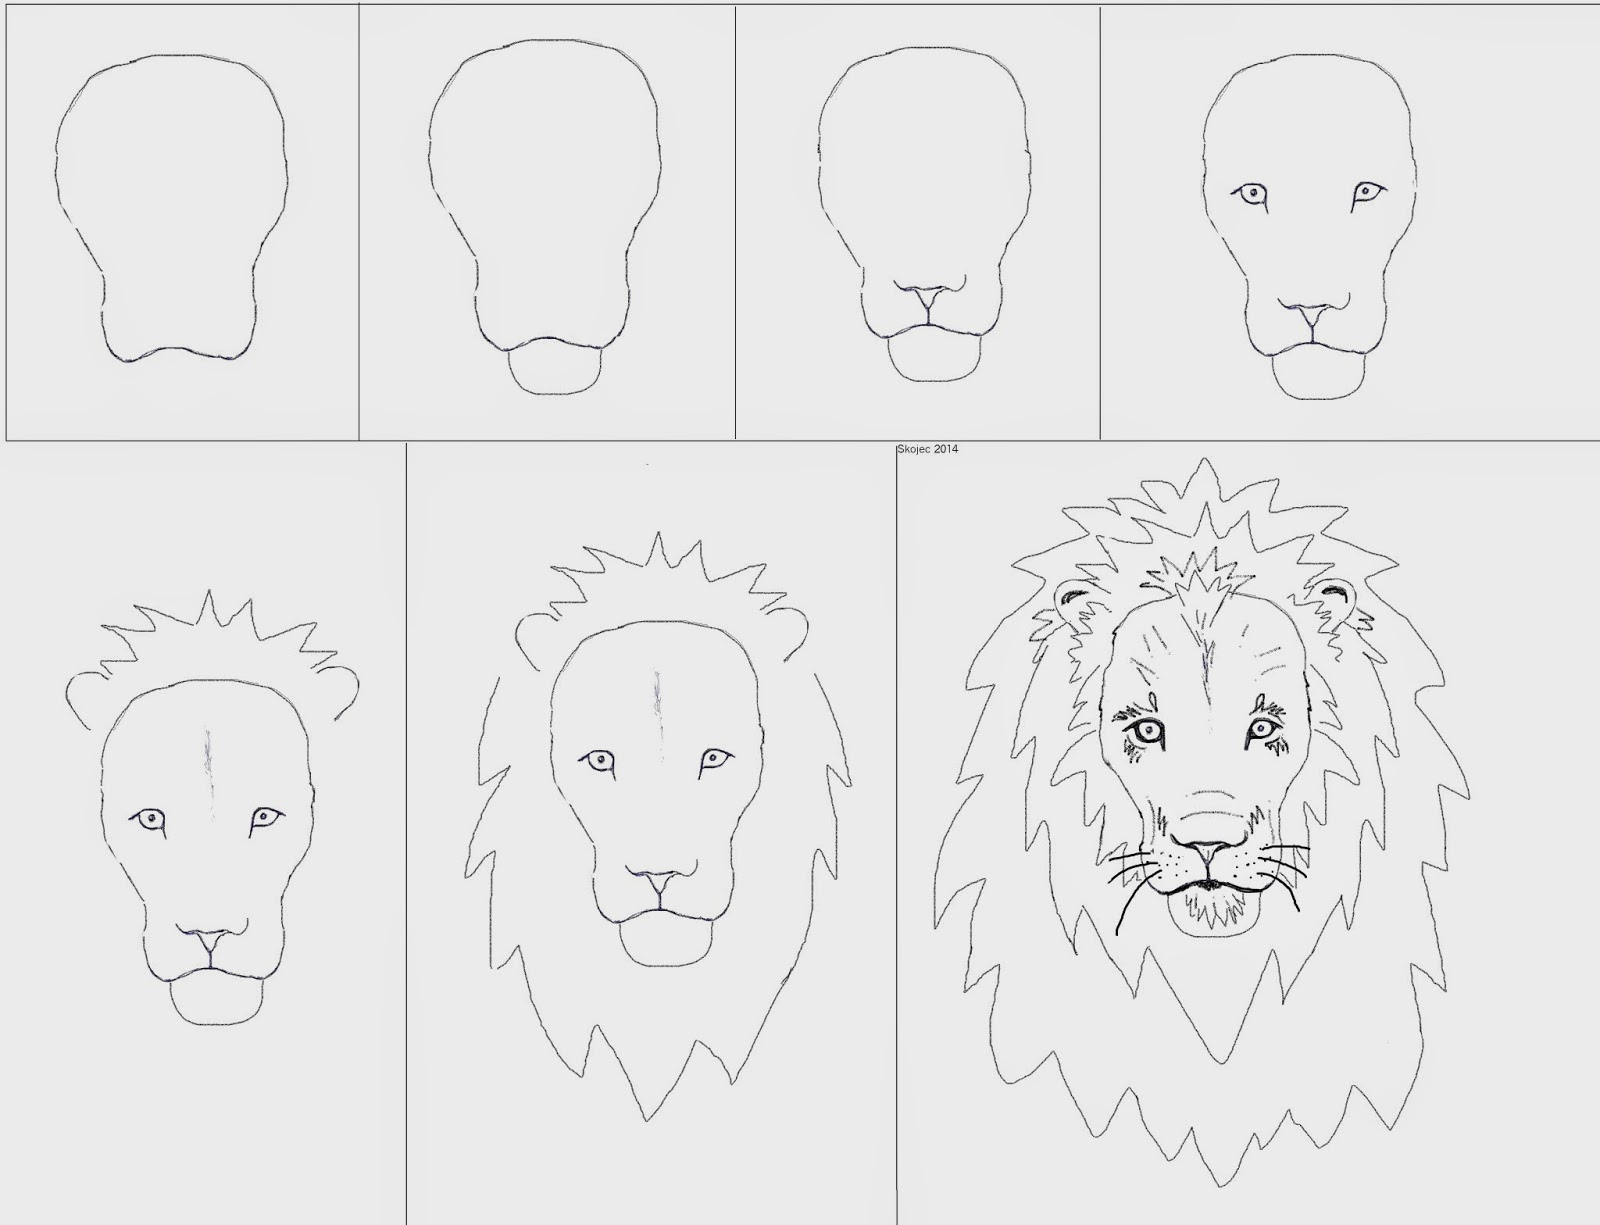 Here are some steps to draw a simplified lion